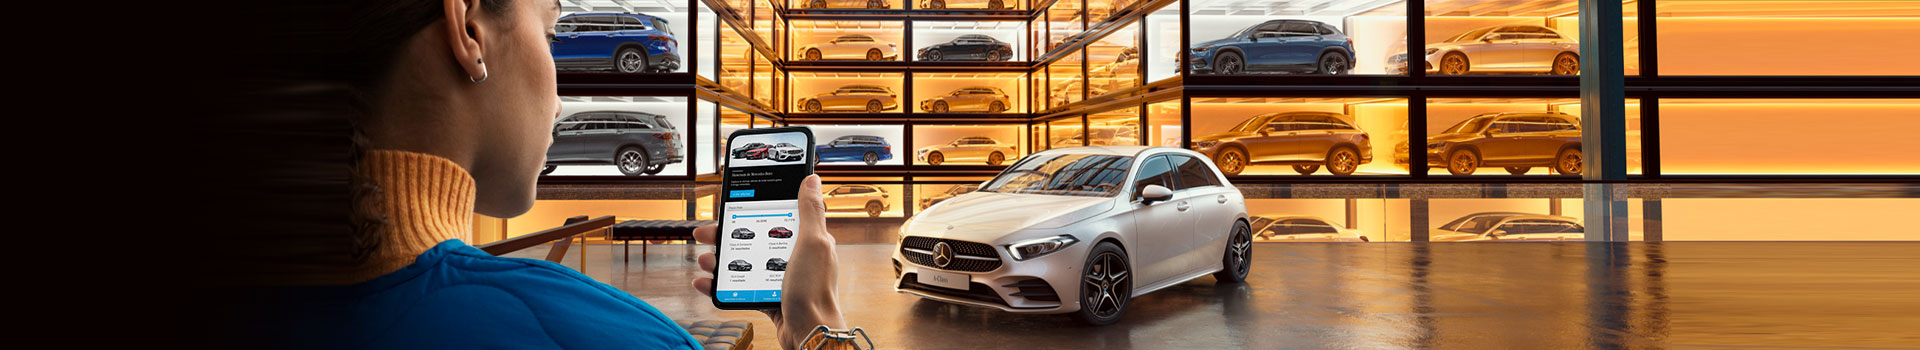 Showroom de Mercedes-Benz.